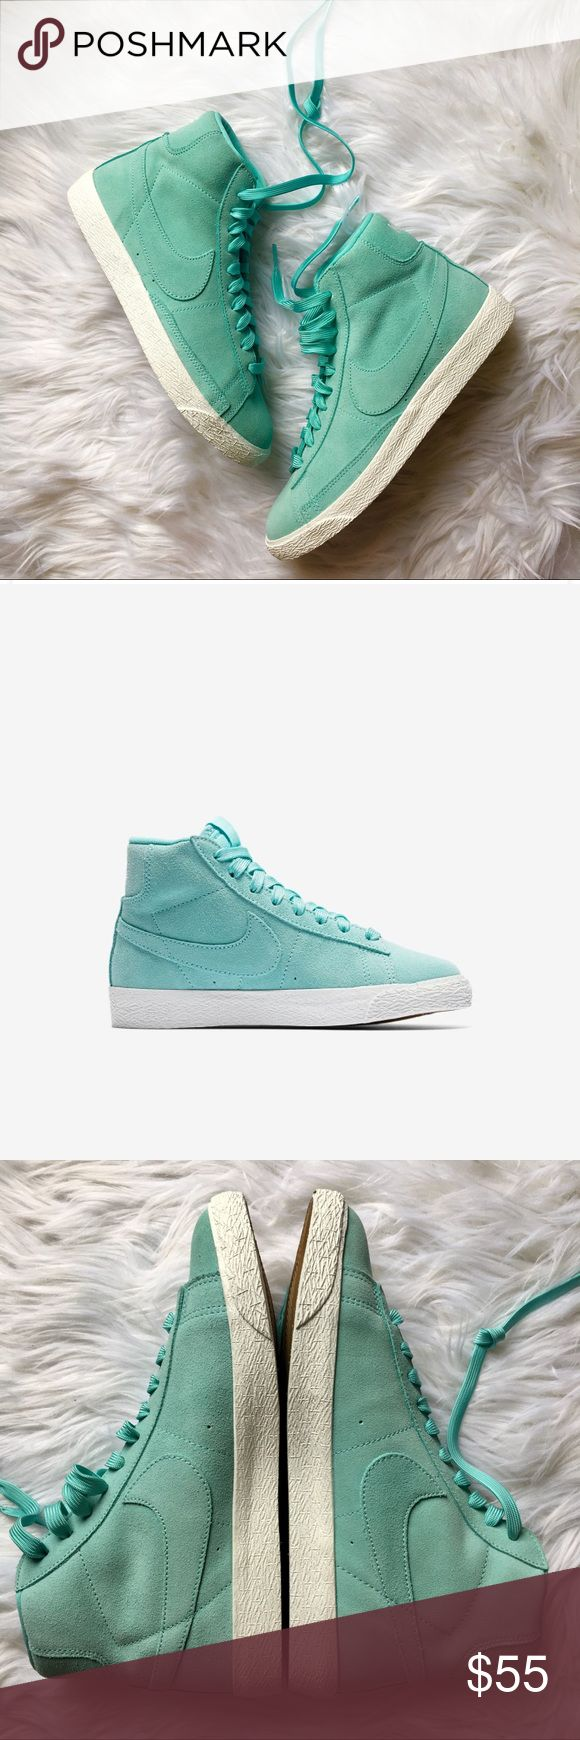 Nike Blazer mid tops suede shoes women's size 8.5 New without box Nike mid tops in a Tiffany Blue suede leather. These are a Youth Boys size 7, which converts to an 8.5 in women's shoes. Nike Shoes Sneakers